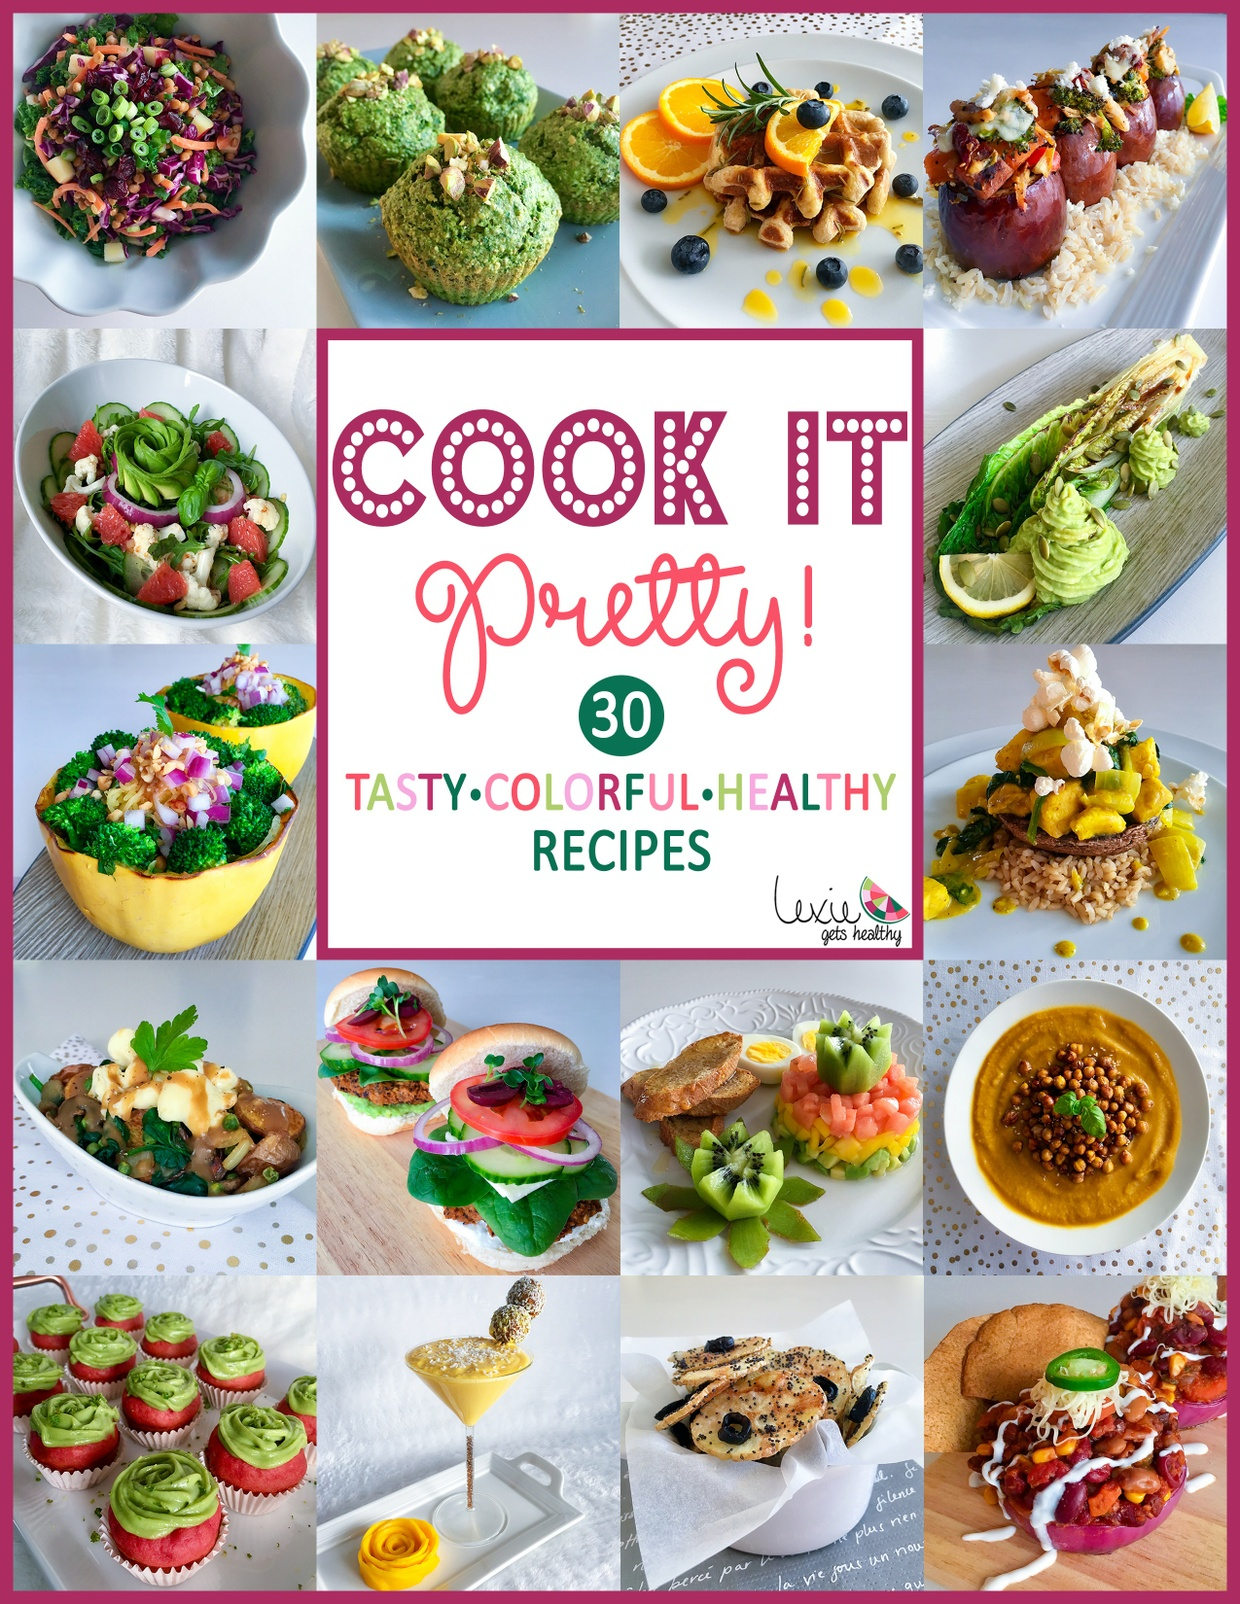 Cook it Pretty!